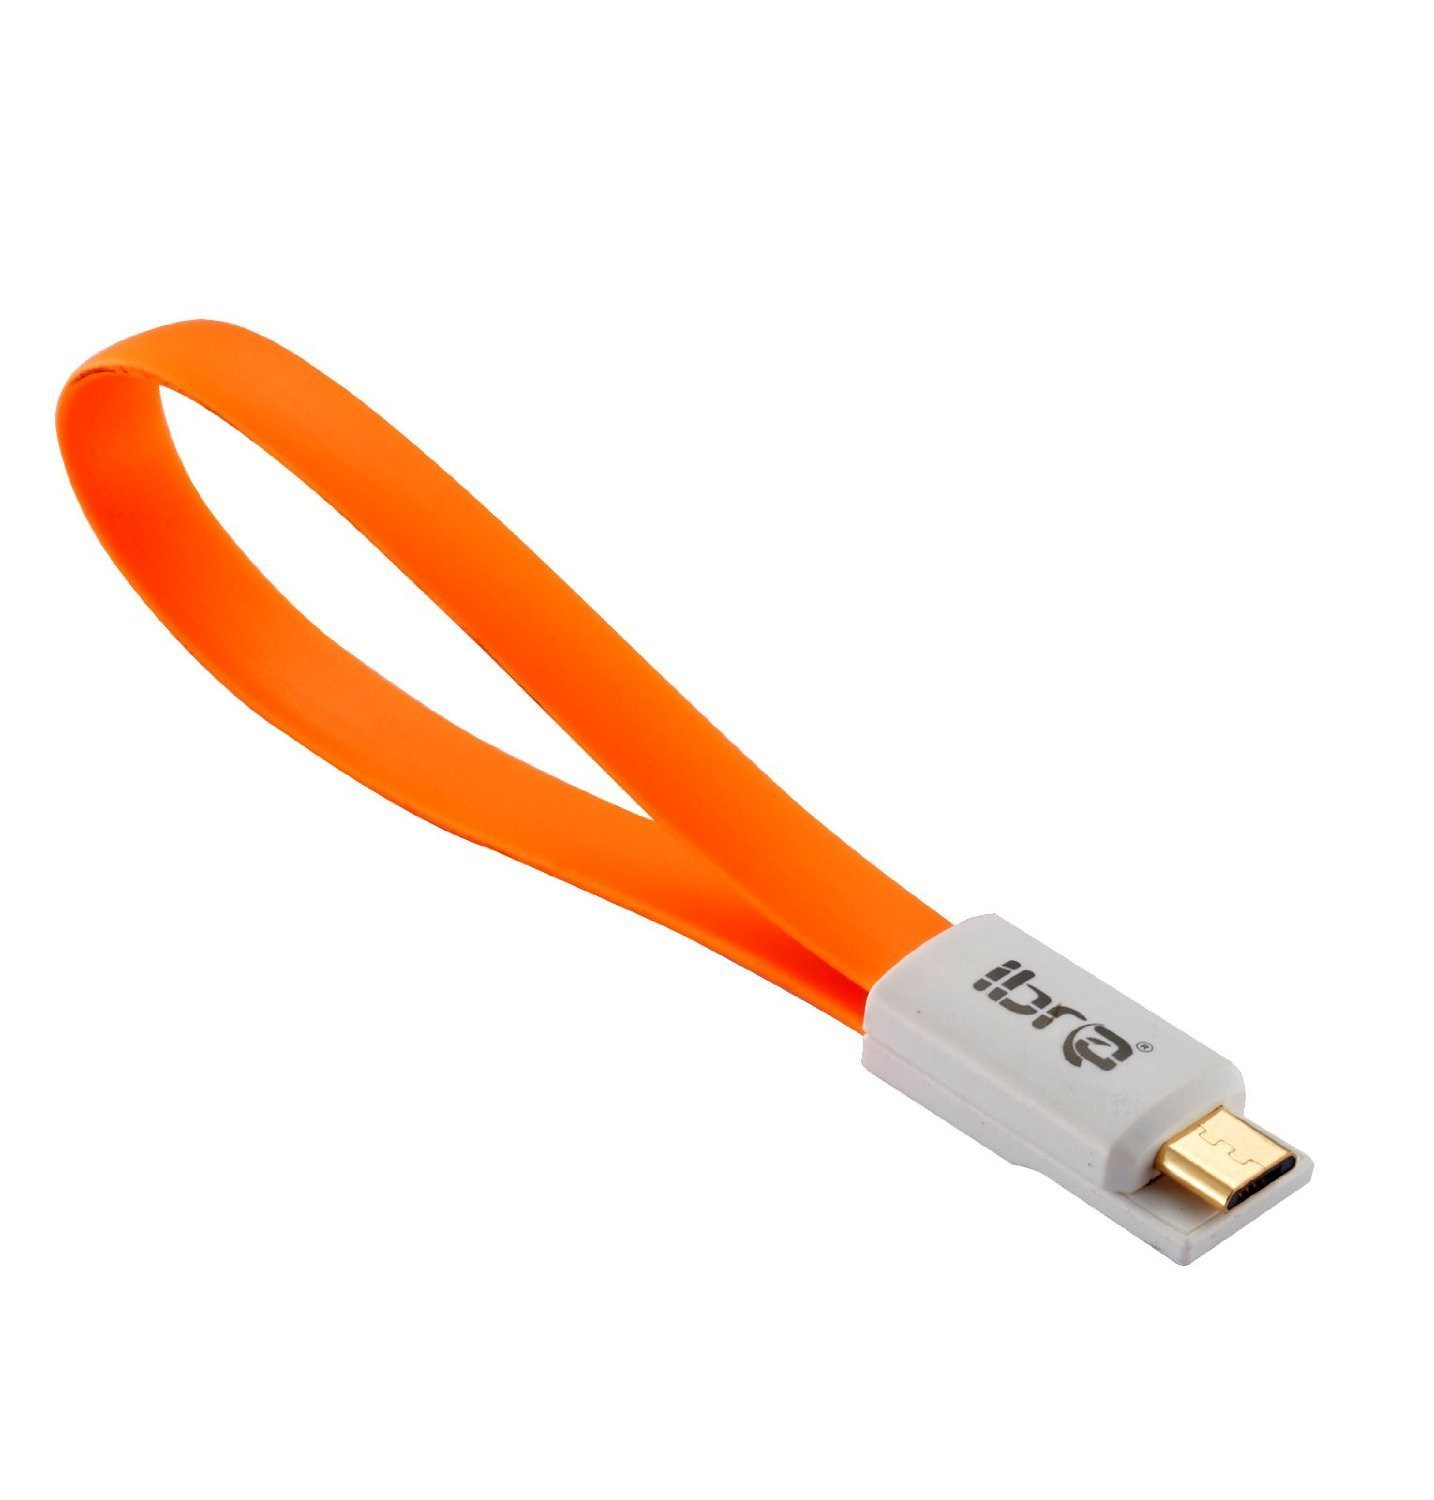 IBRA 0.2M Magnet Short and Compact Micro USB Charging/Sync Data Cable for for Samsung Galaxy S4 i9500 i9300 N7100 Nokia HTC Sony Xperia Series and all Mobilephones/Tablets/Cameras/Sat Nav -7.5Inch - Orange